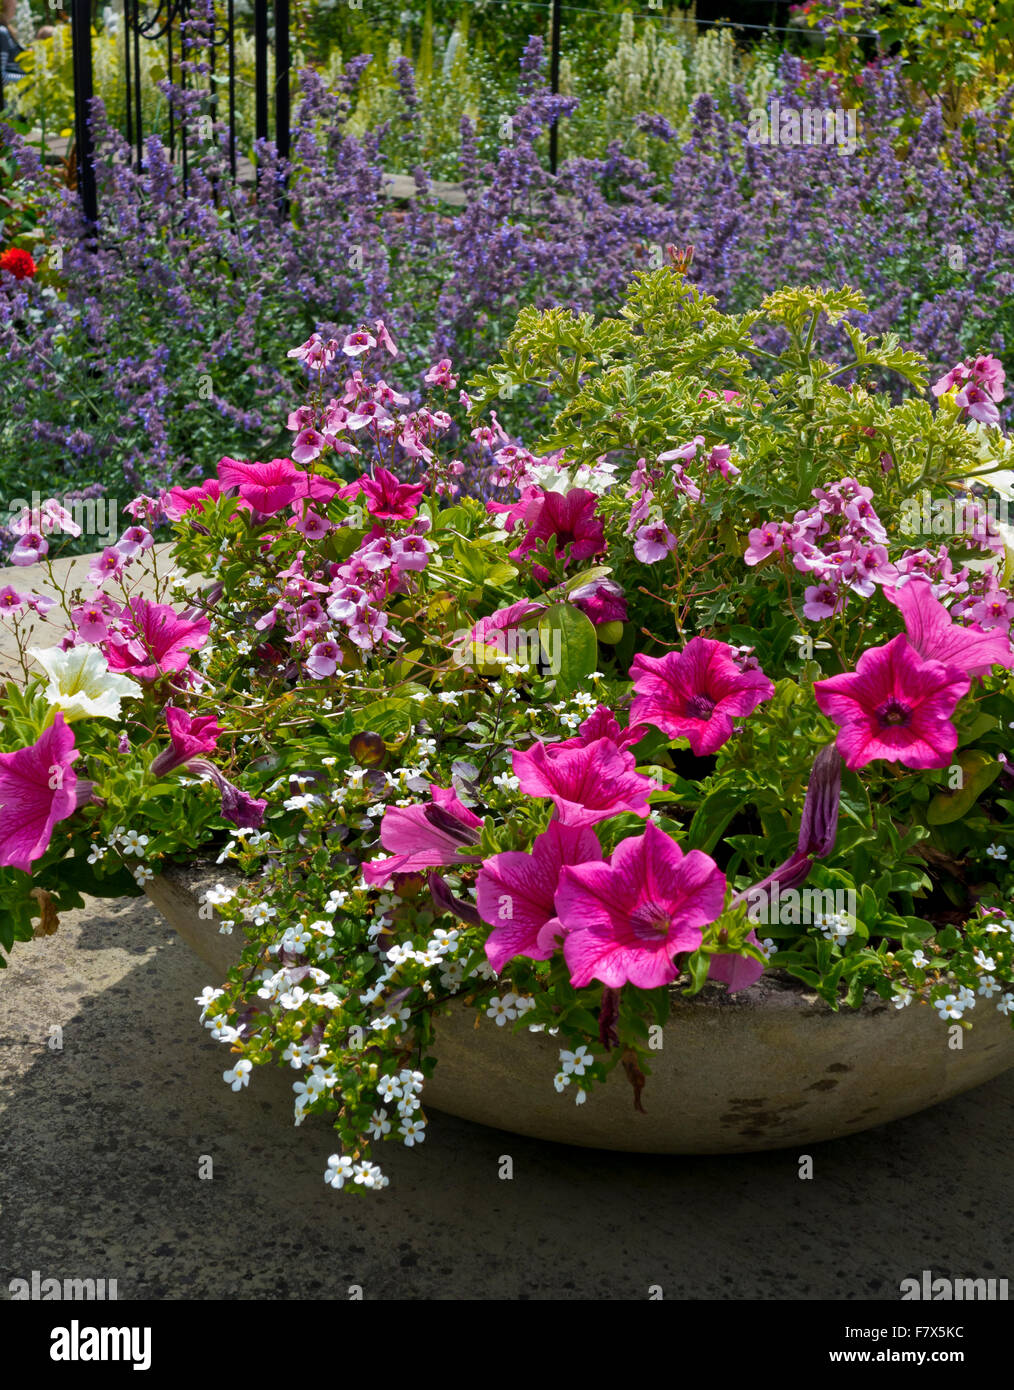 Petunias and other summer flowers growing in a stone urn - Stock Image